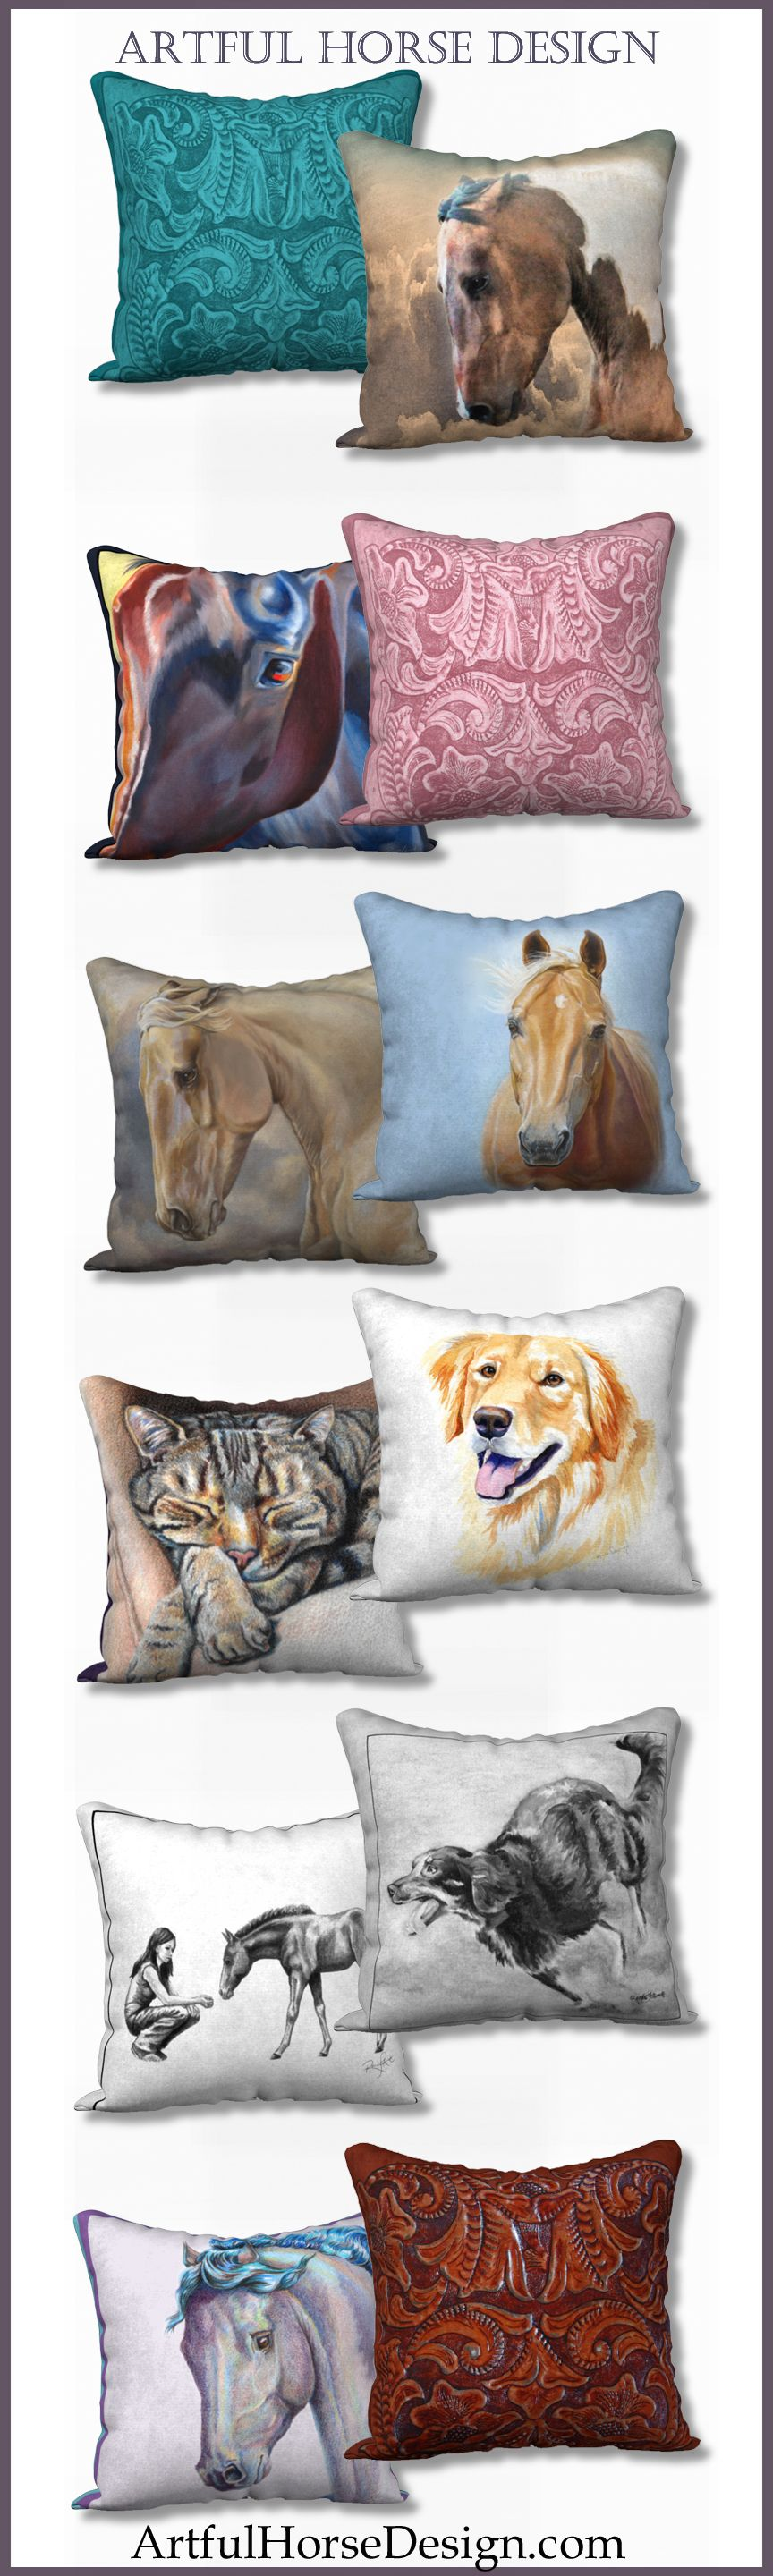 Custom home decor pillow covers for horse, dog and cat